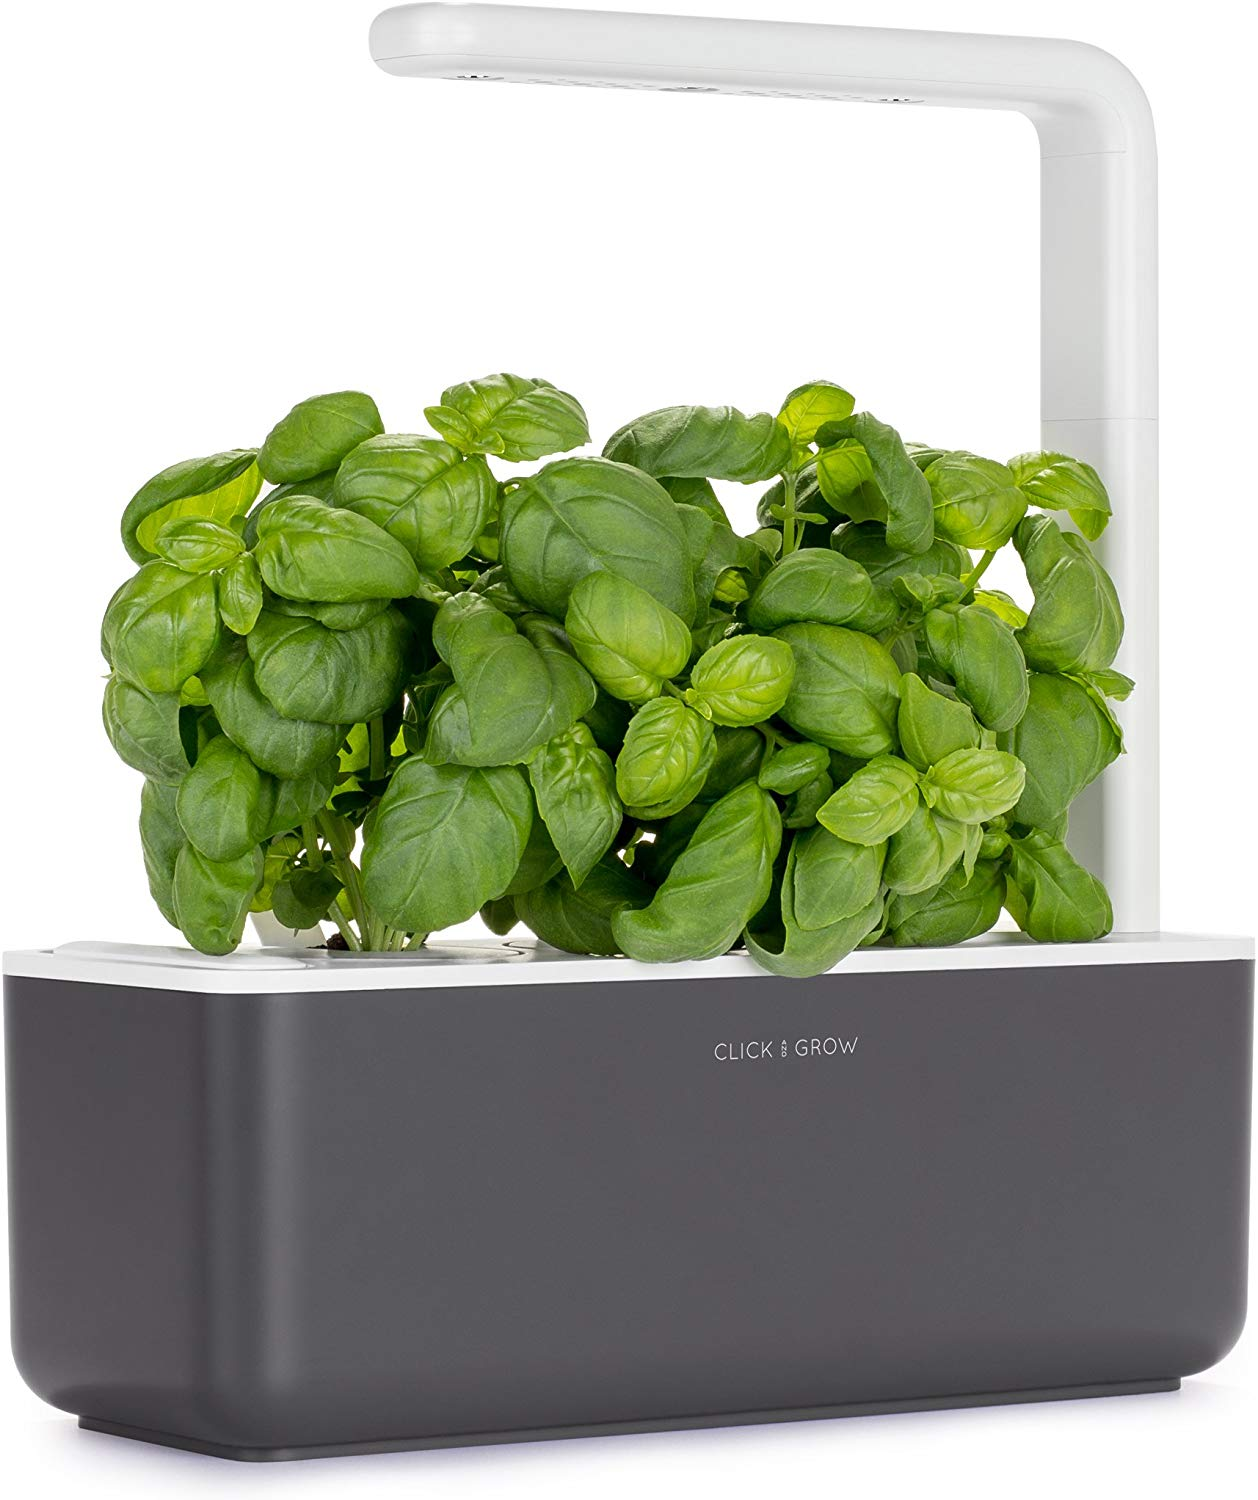 Smart Garden 3 Self Watering Indoor Garden - Best Tech Gifts of 2019